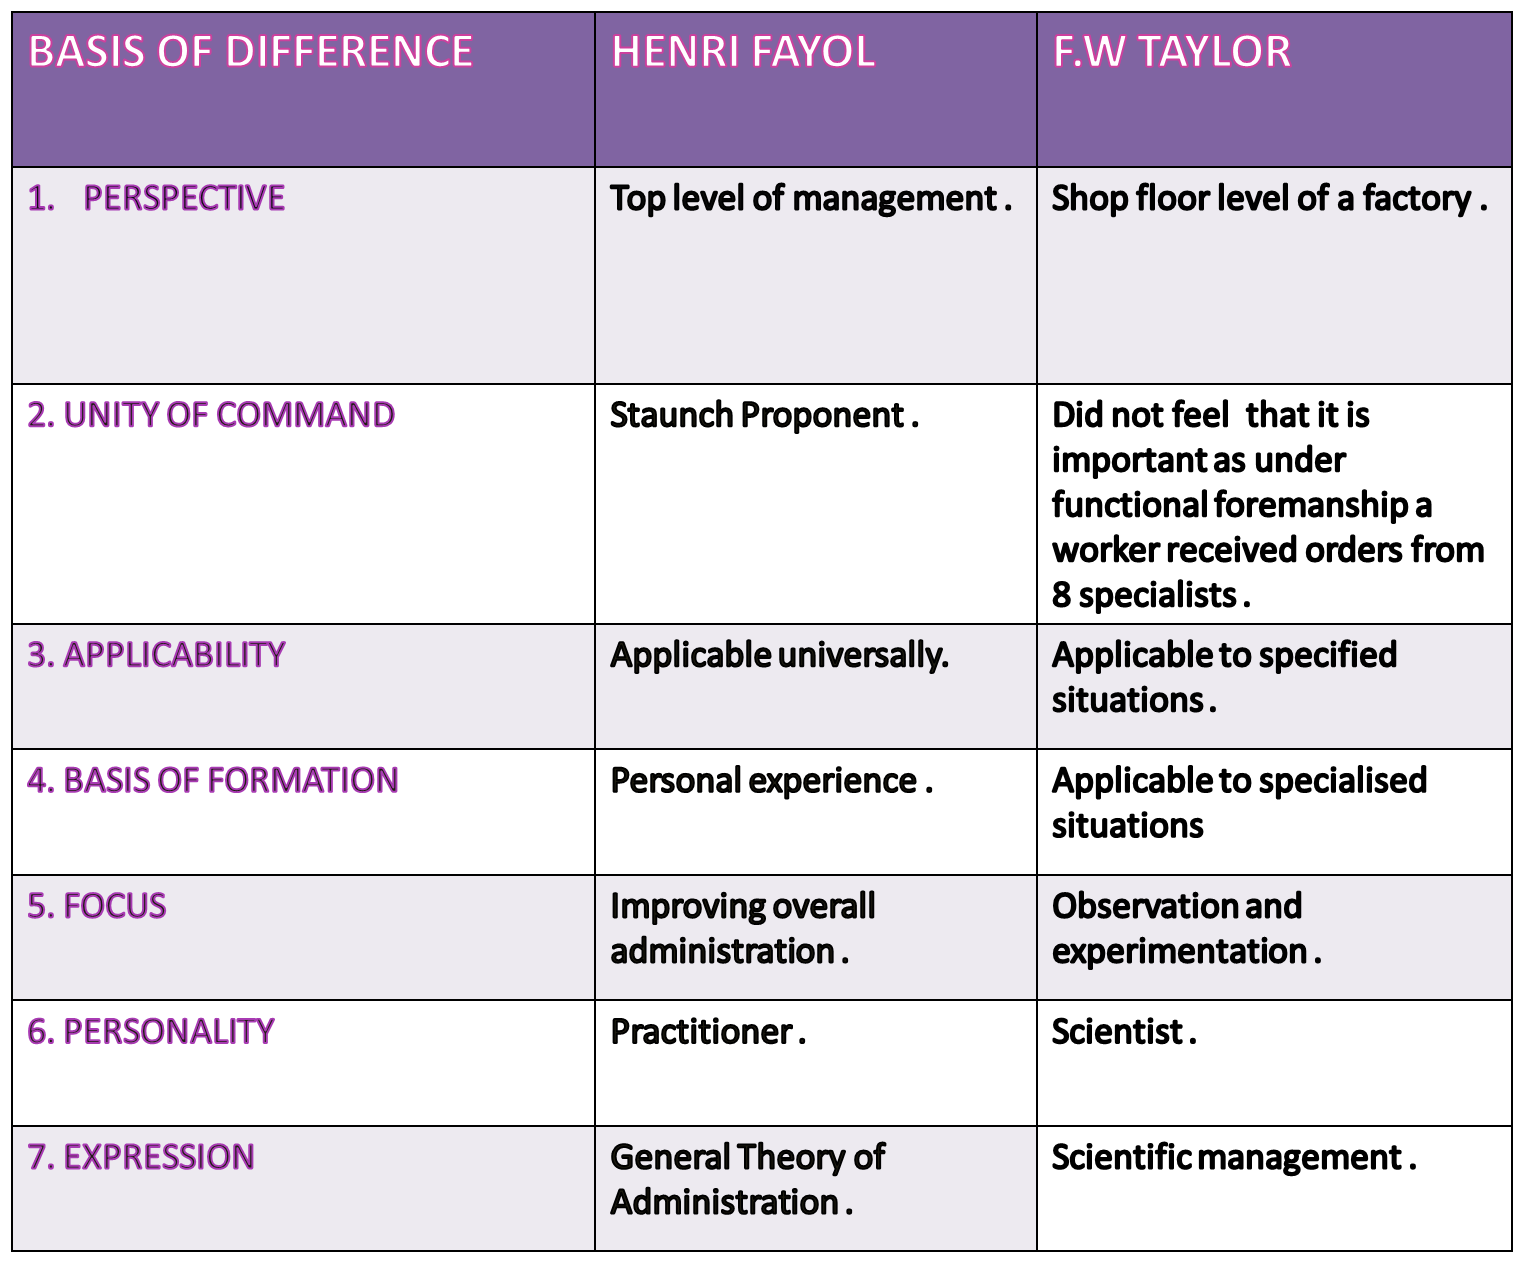 comparison between taylor and fayol